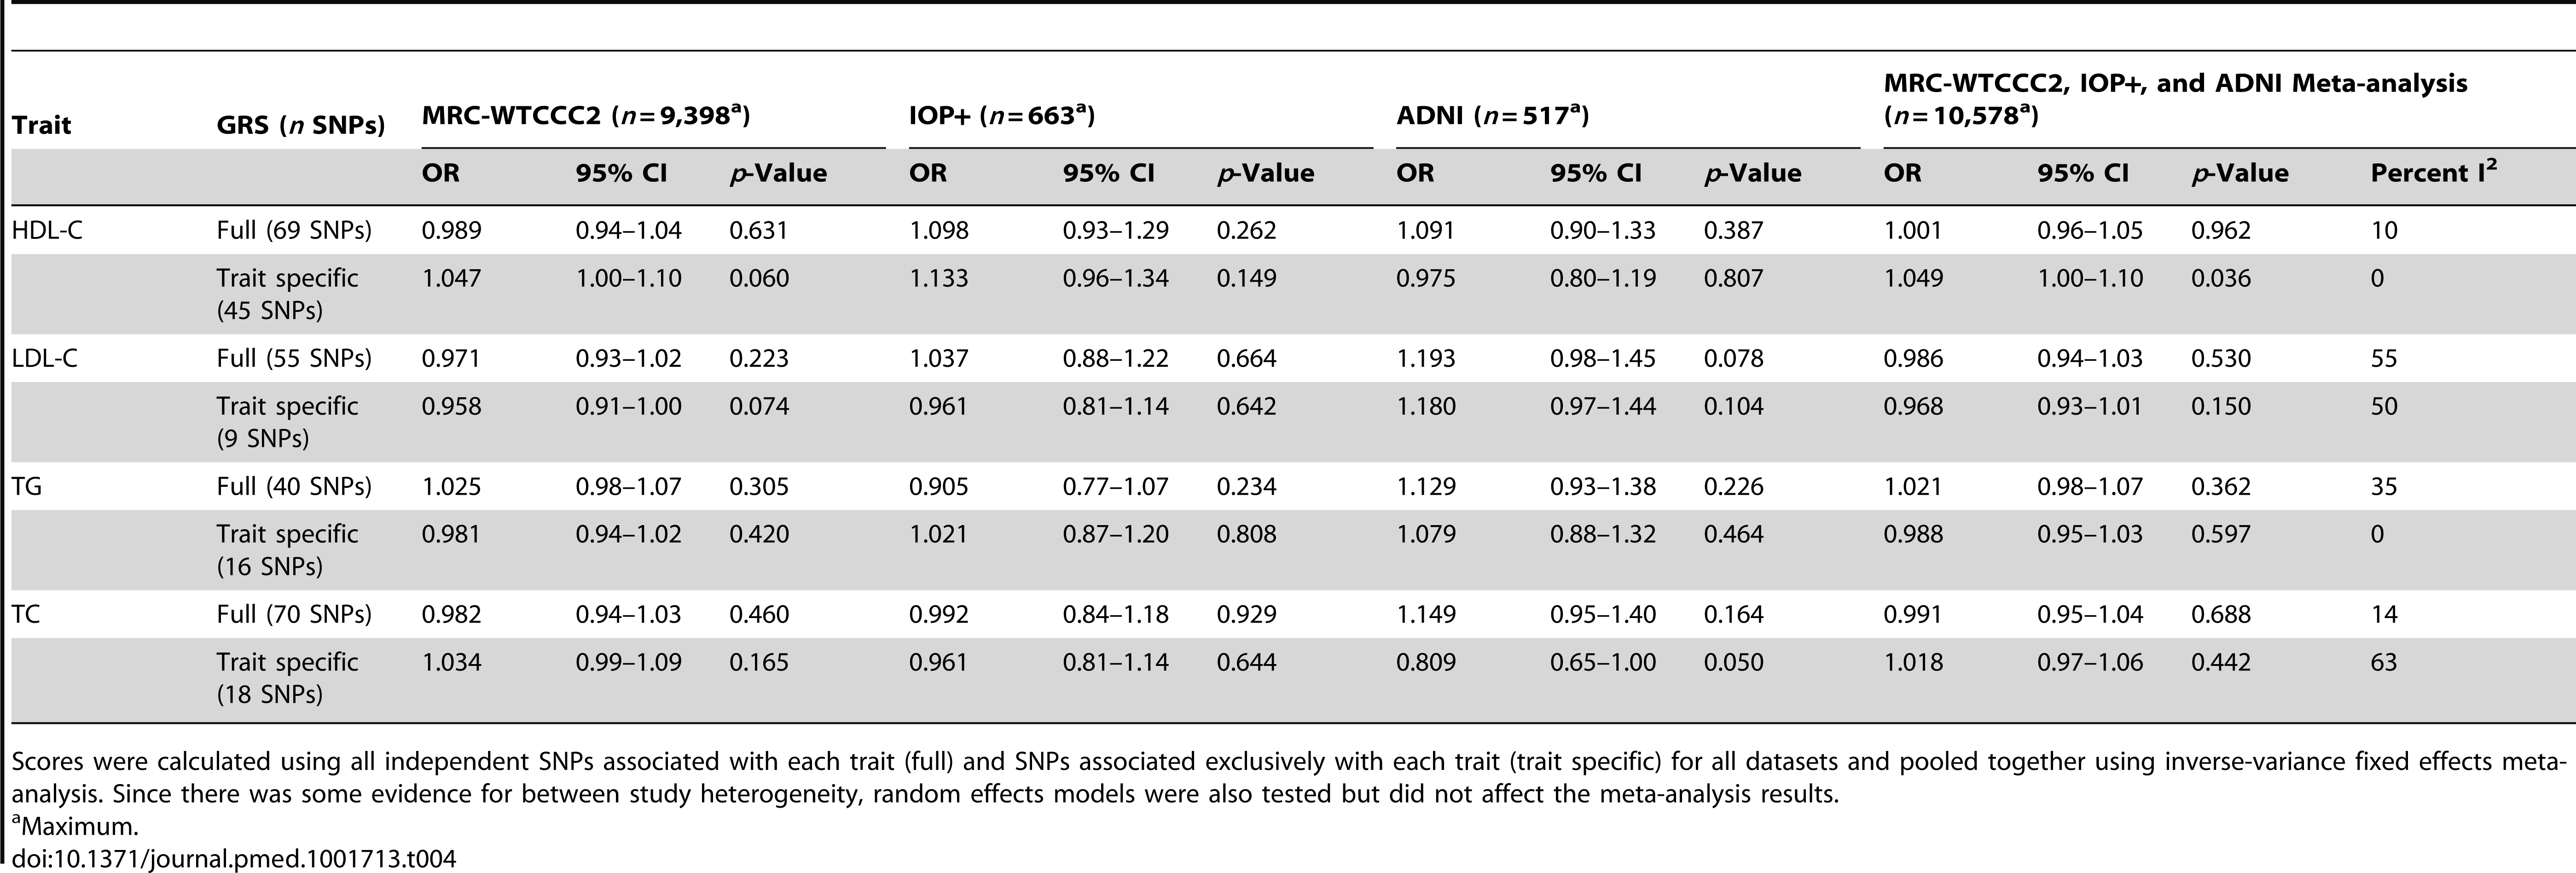 Association of lipid genotype risk scores with LOAD per lipid score SD using individual level data (stage 1 equation).